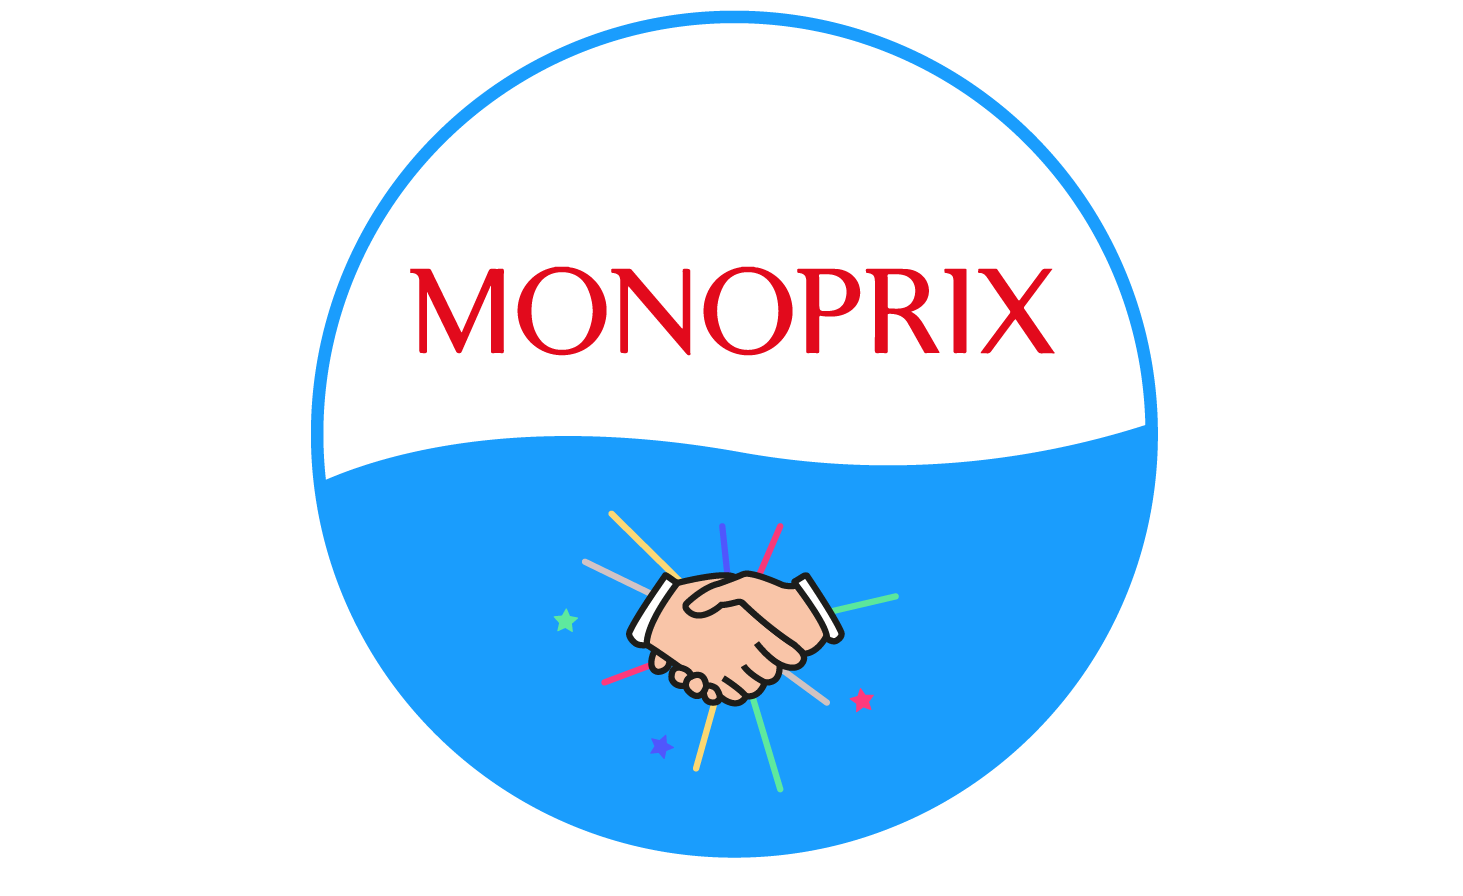 How Monoprix engages the entire company, shop floor to boardroom, in customer feedback management and CX